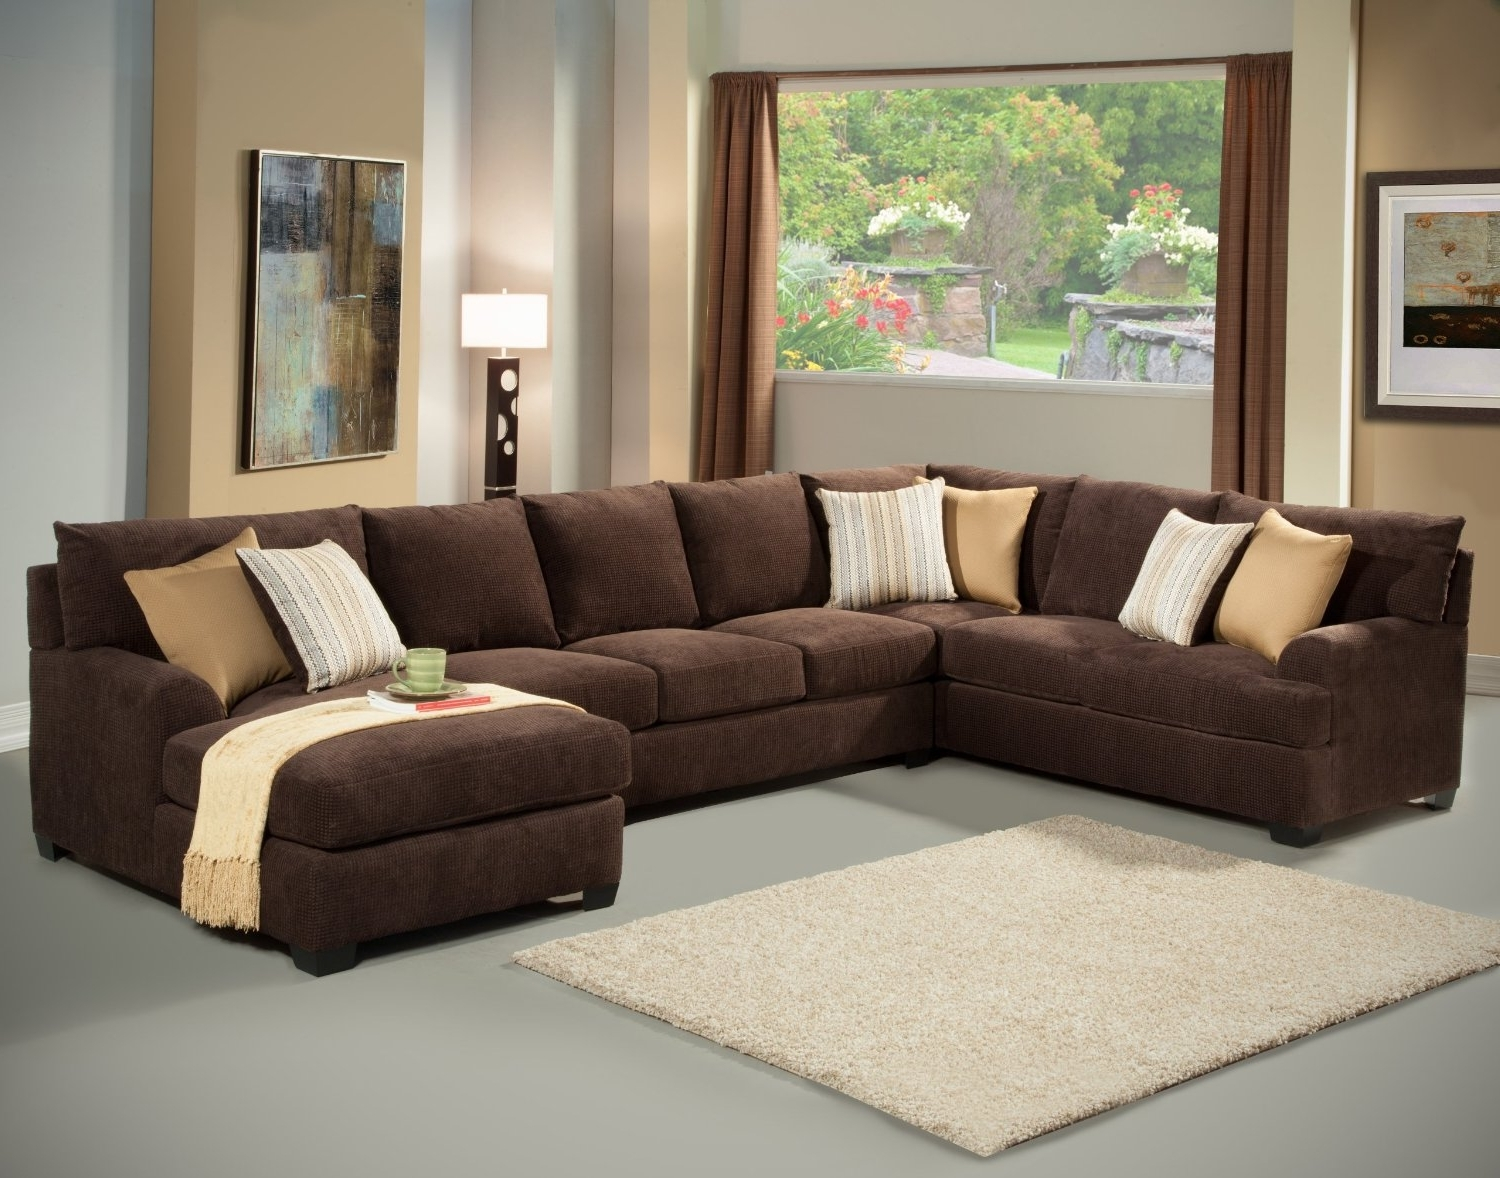 Newest Elliot Fabric Microfiber 2 Piece Chaise Sectional Sofa Macy's With Sectional Sofas With Chaise Lounge And Ottoman (View 14 of 15)